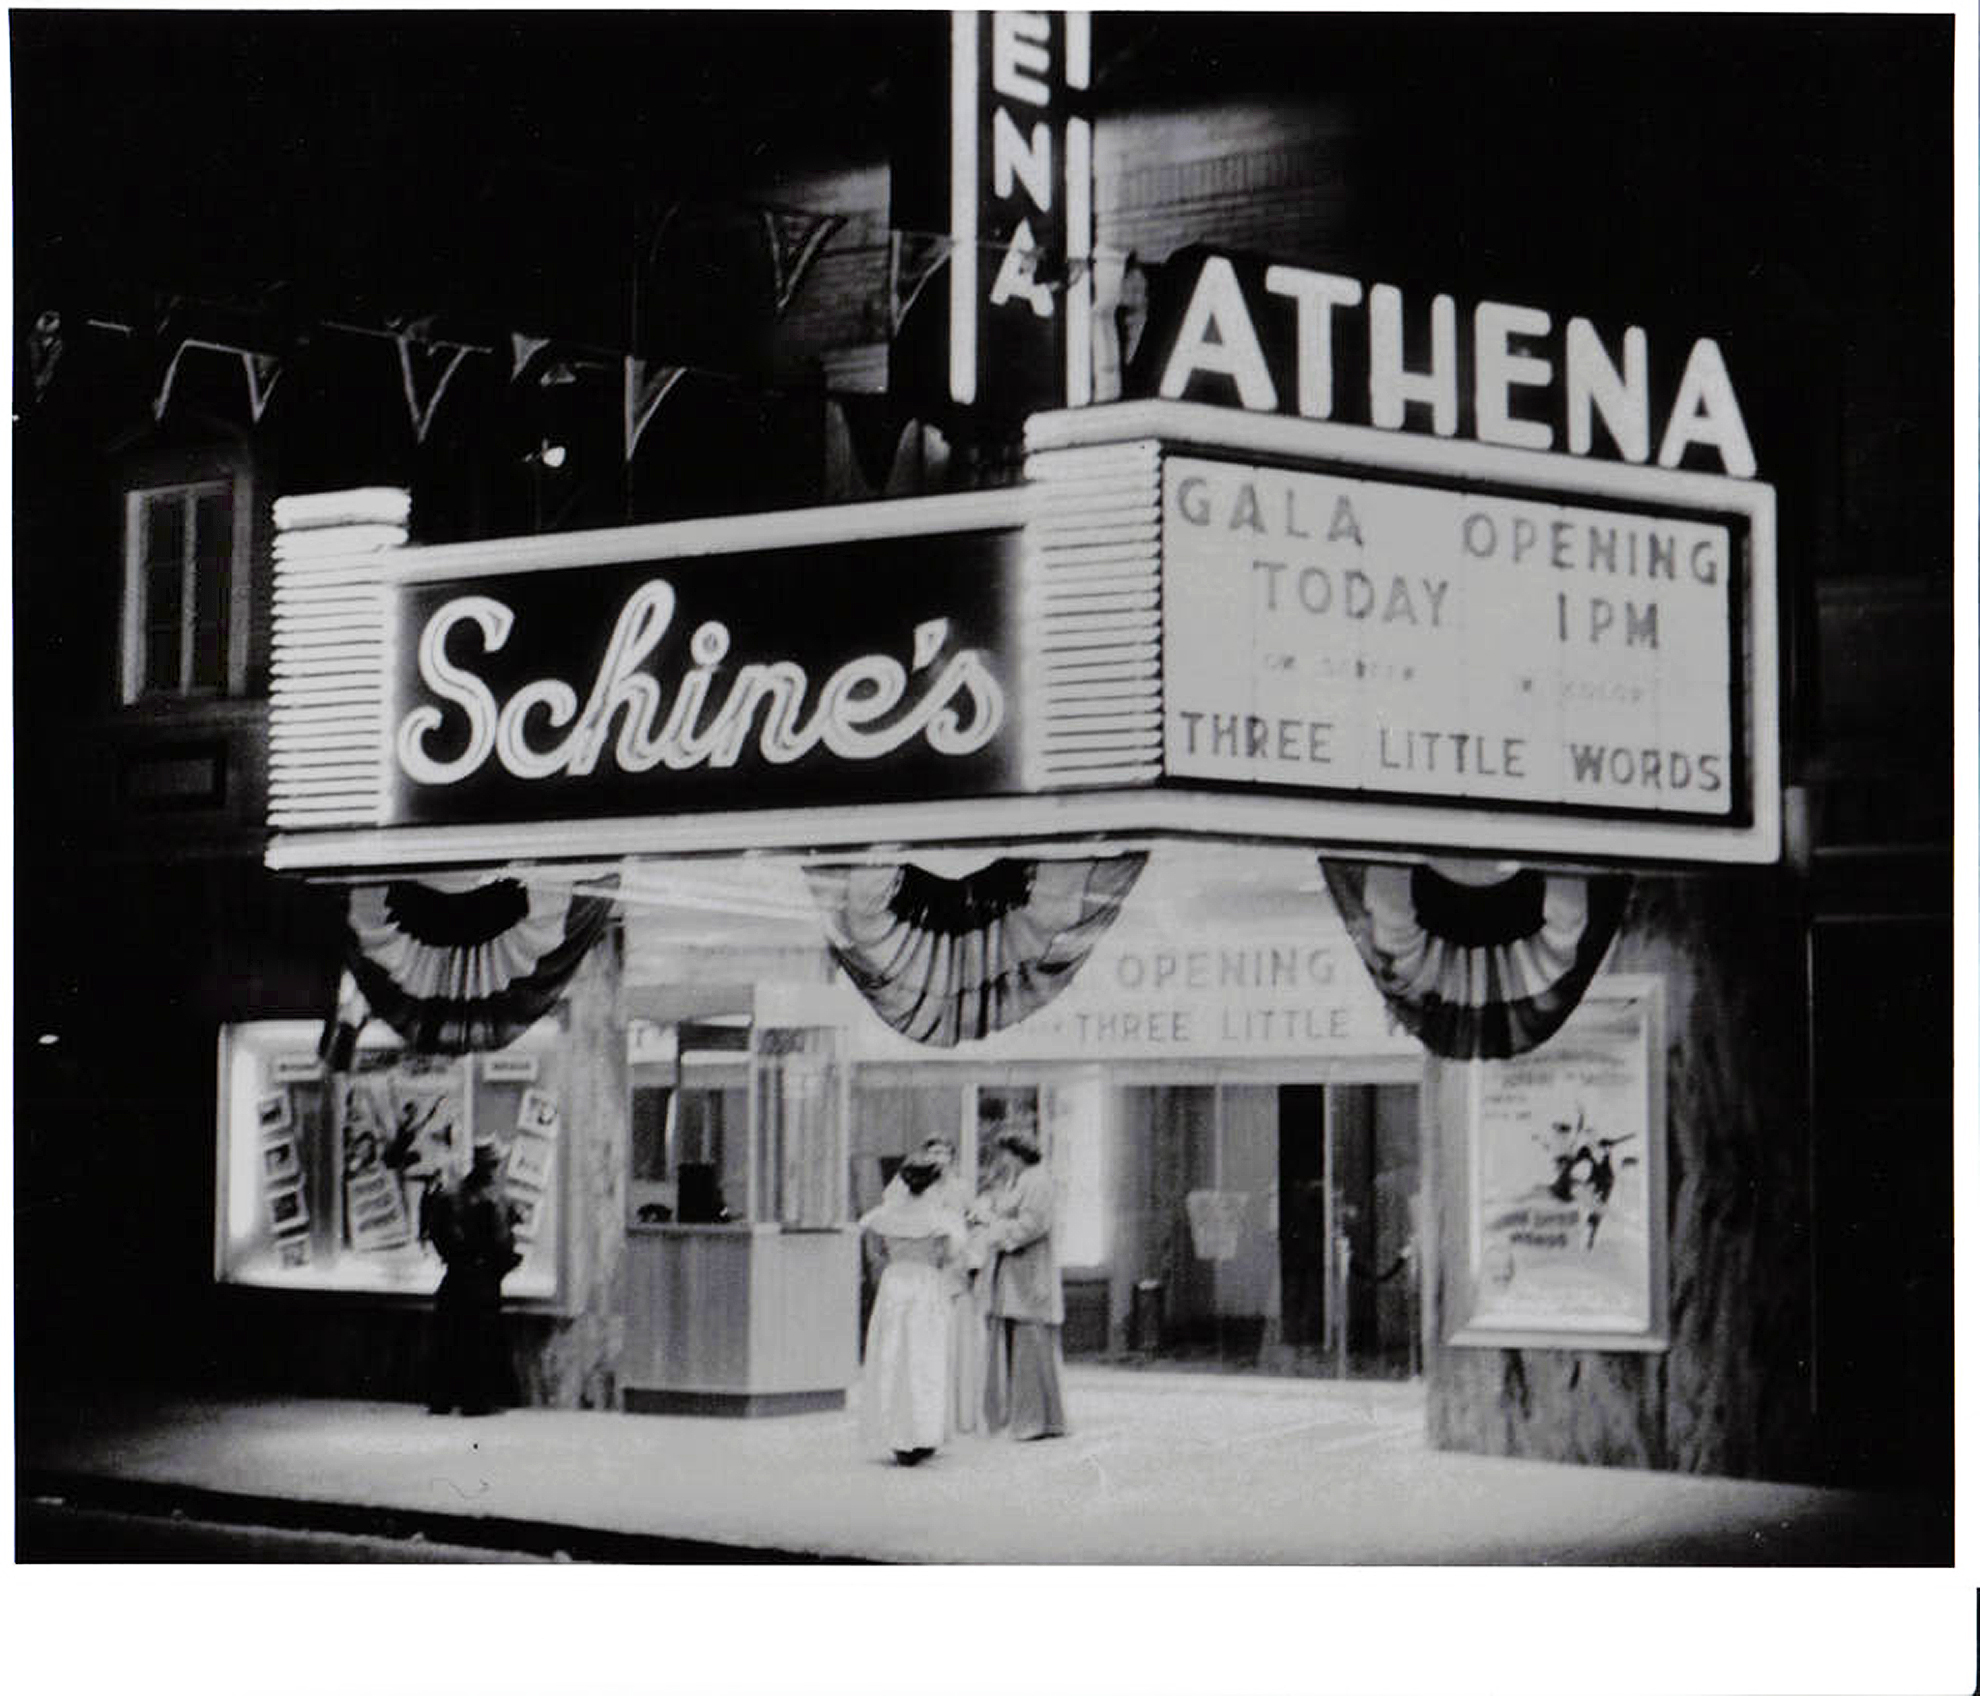 The Athena Cinema in 1950, while it was part of the Schine's theater circuit